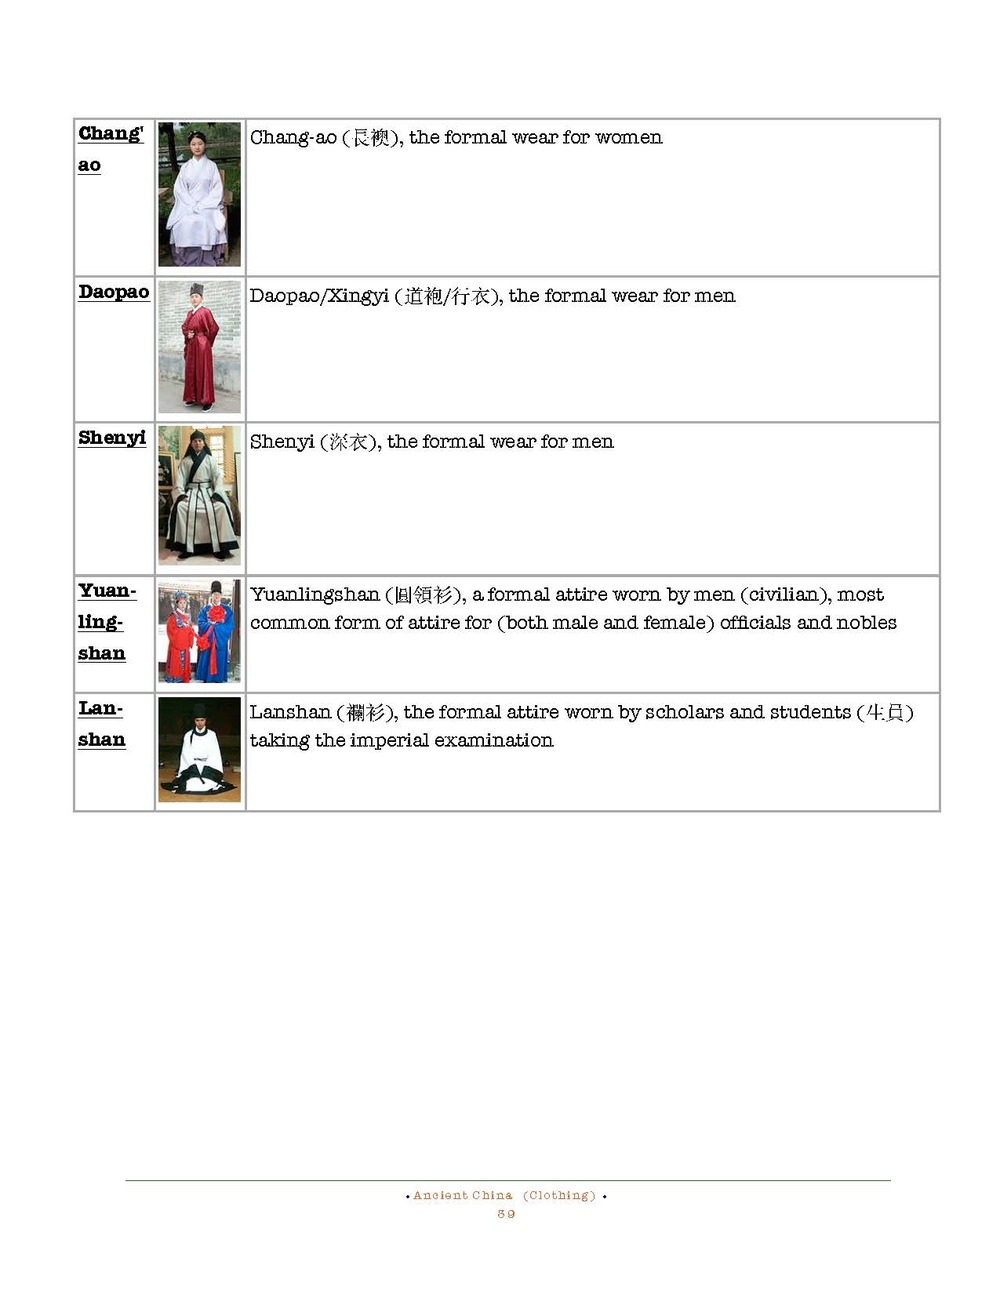 HOCE- Ancient China Notes (clothing)_Page_39.jpg